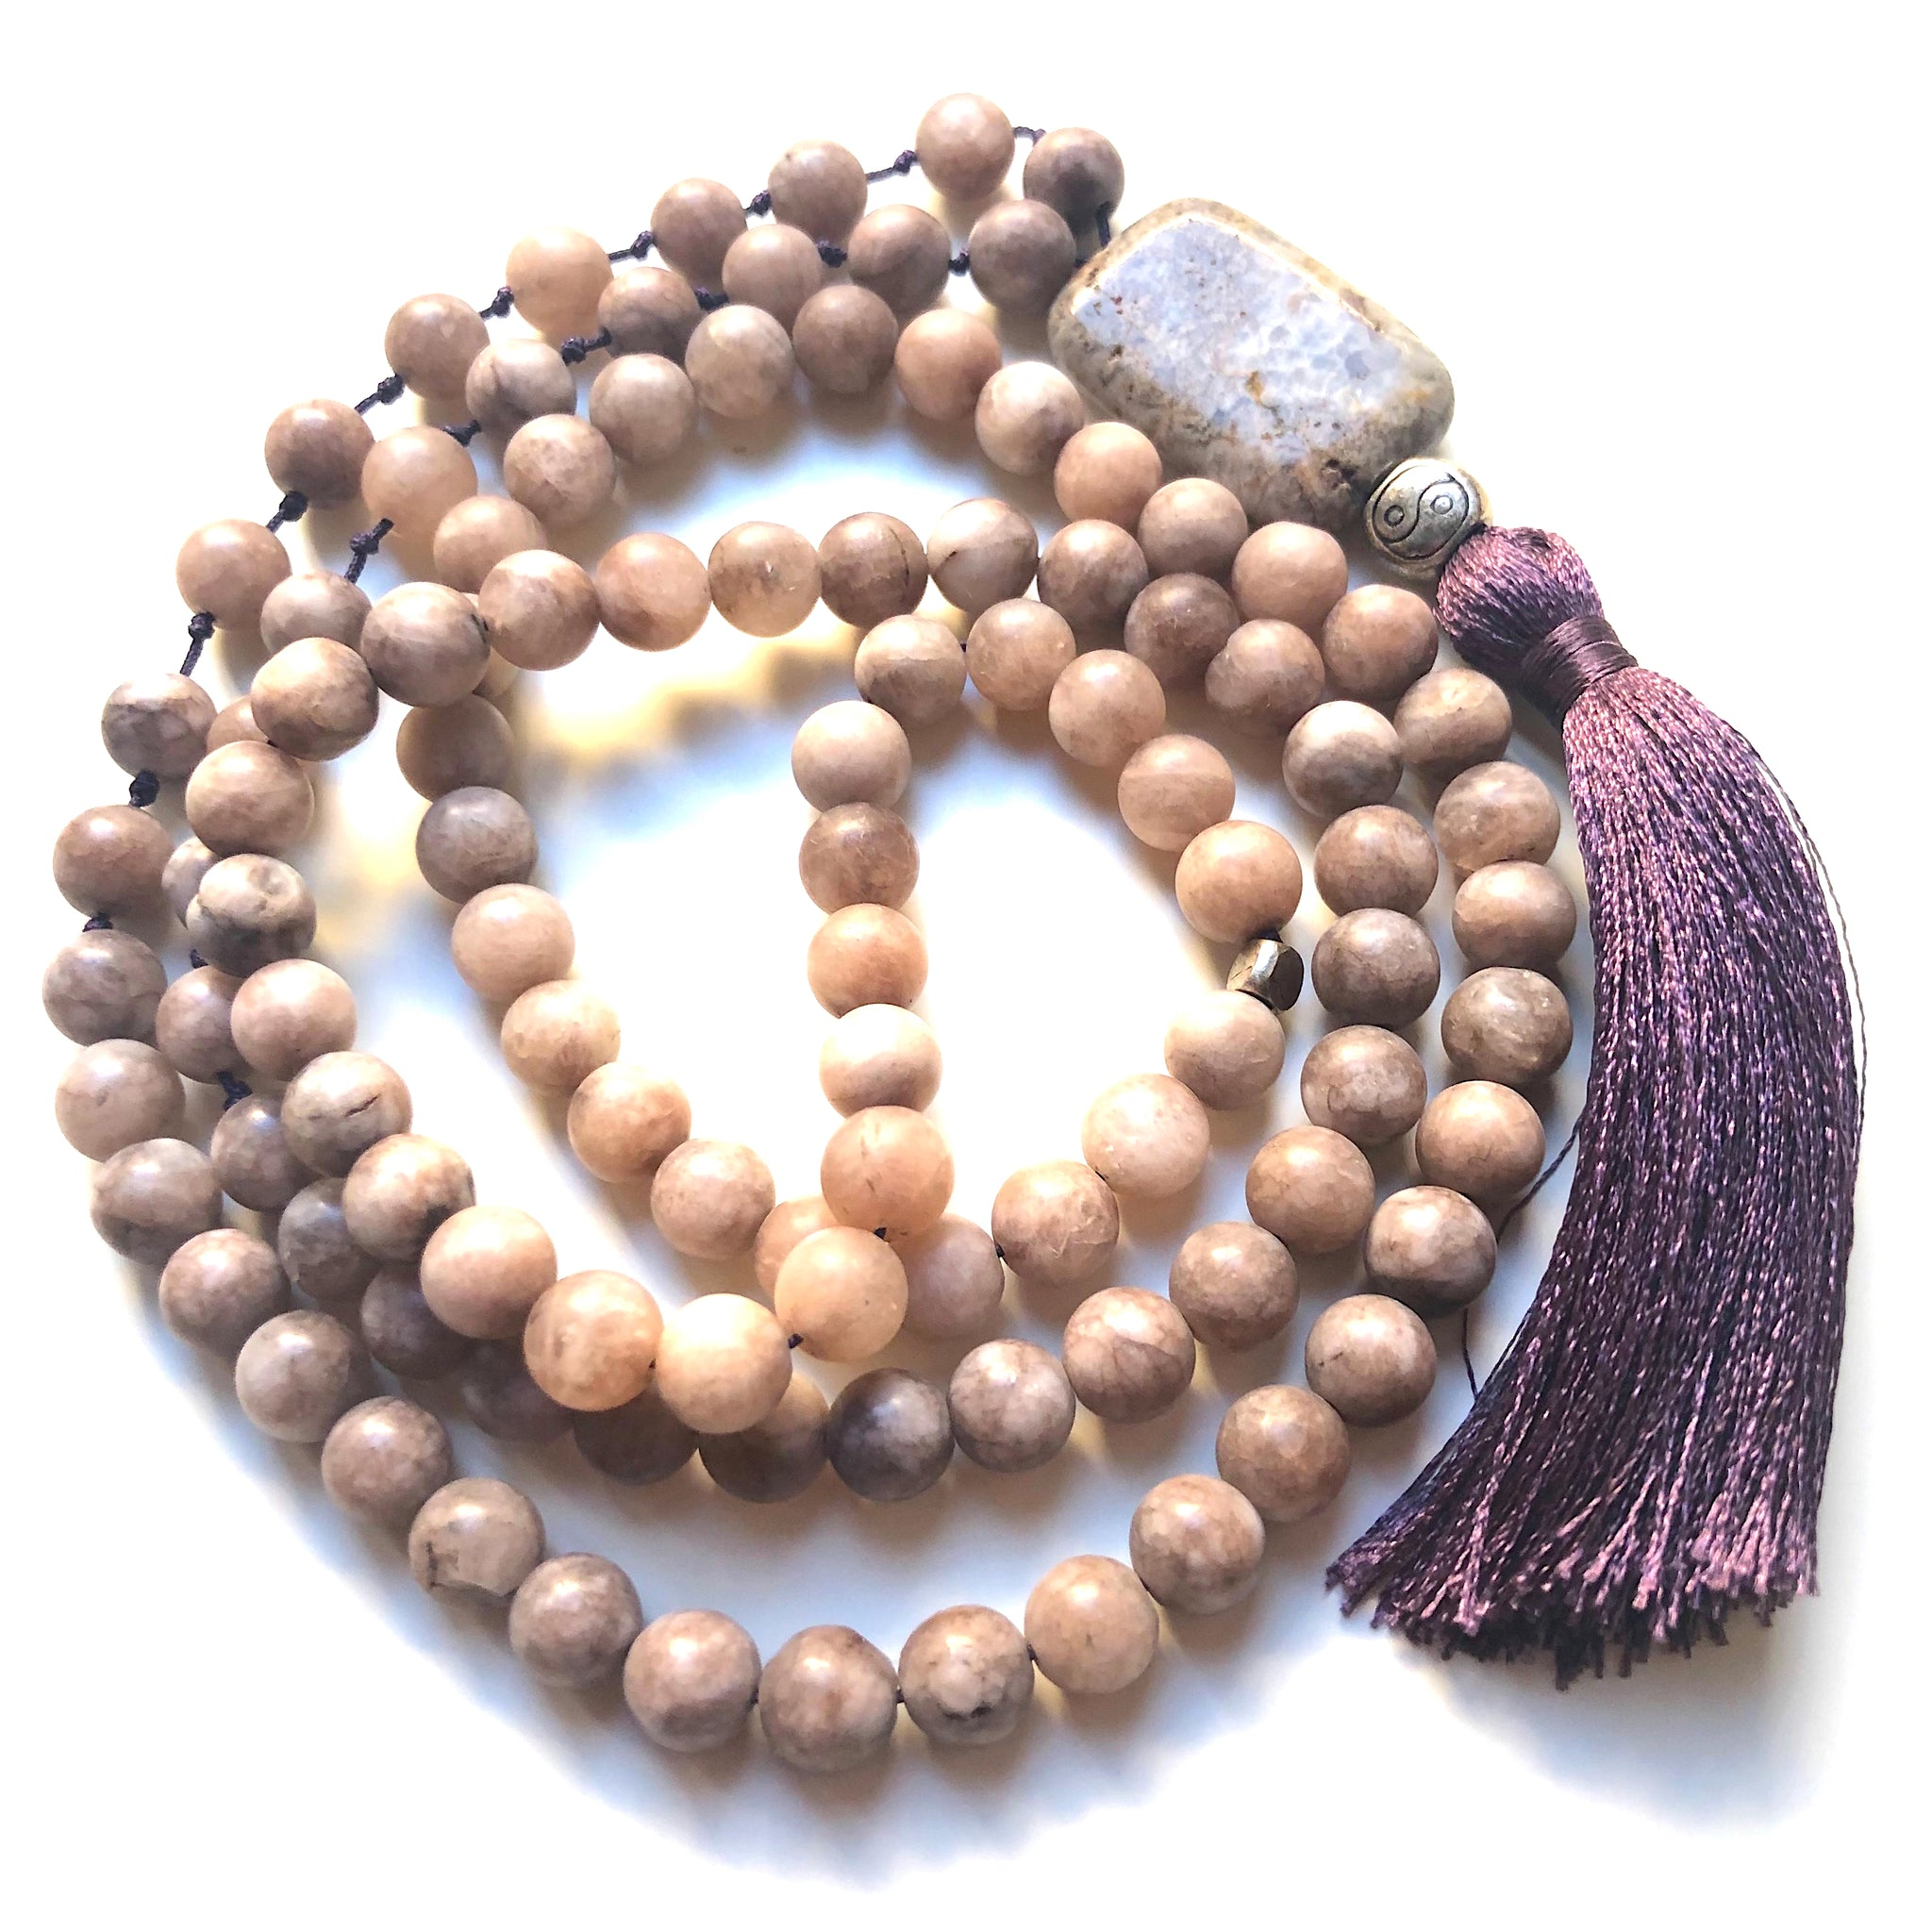 Smoky Jade Mala Beads, Yin&Yang Charm, Yoga Schmuck, 108 beads, Mala Necklace, Meditation